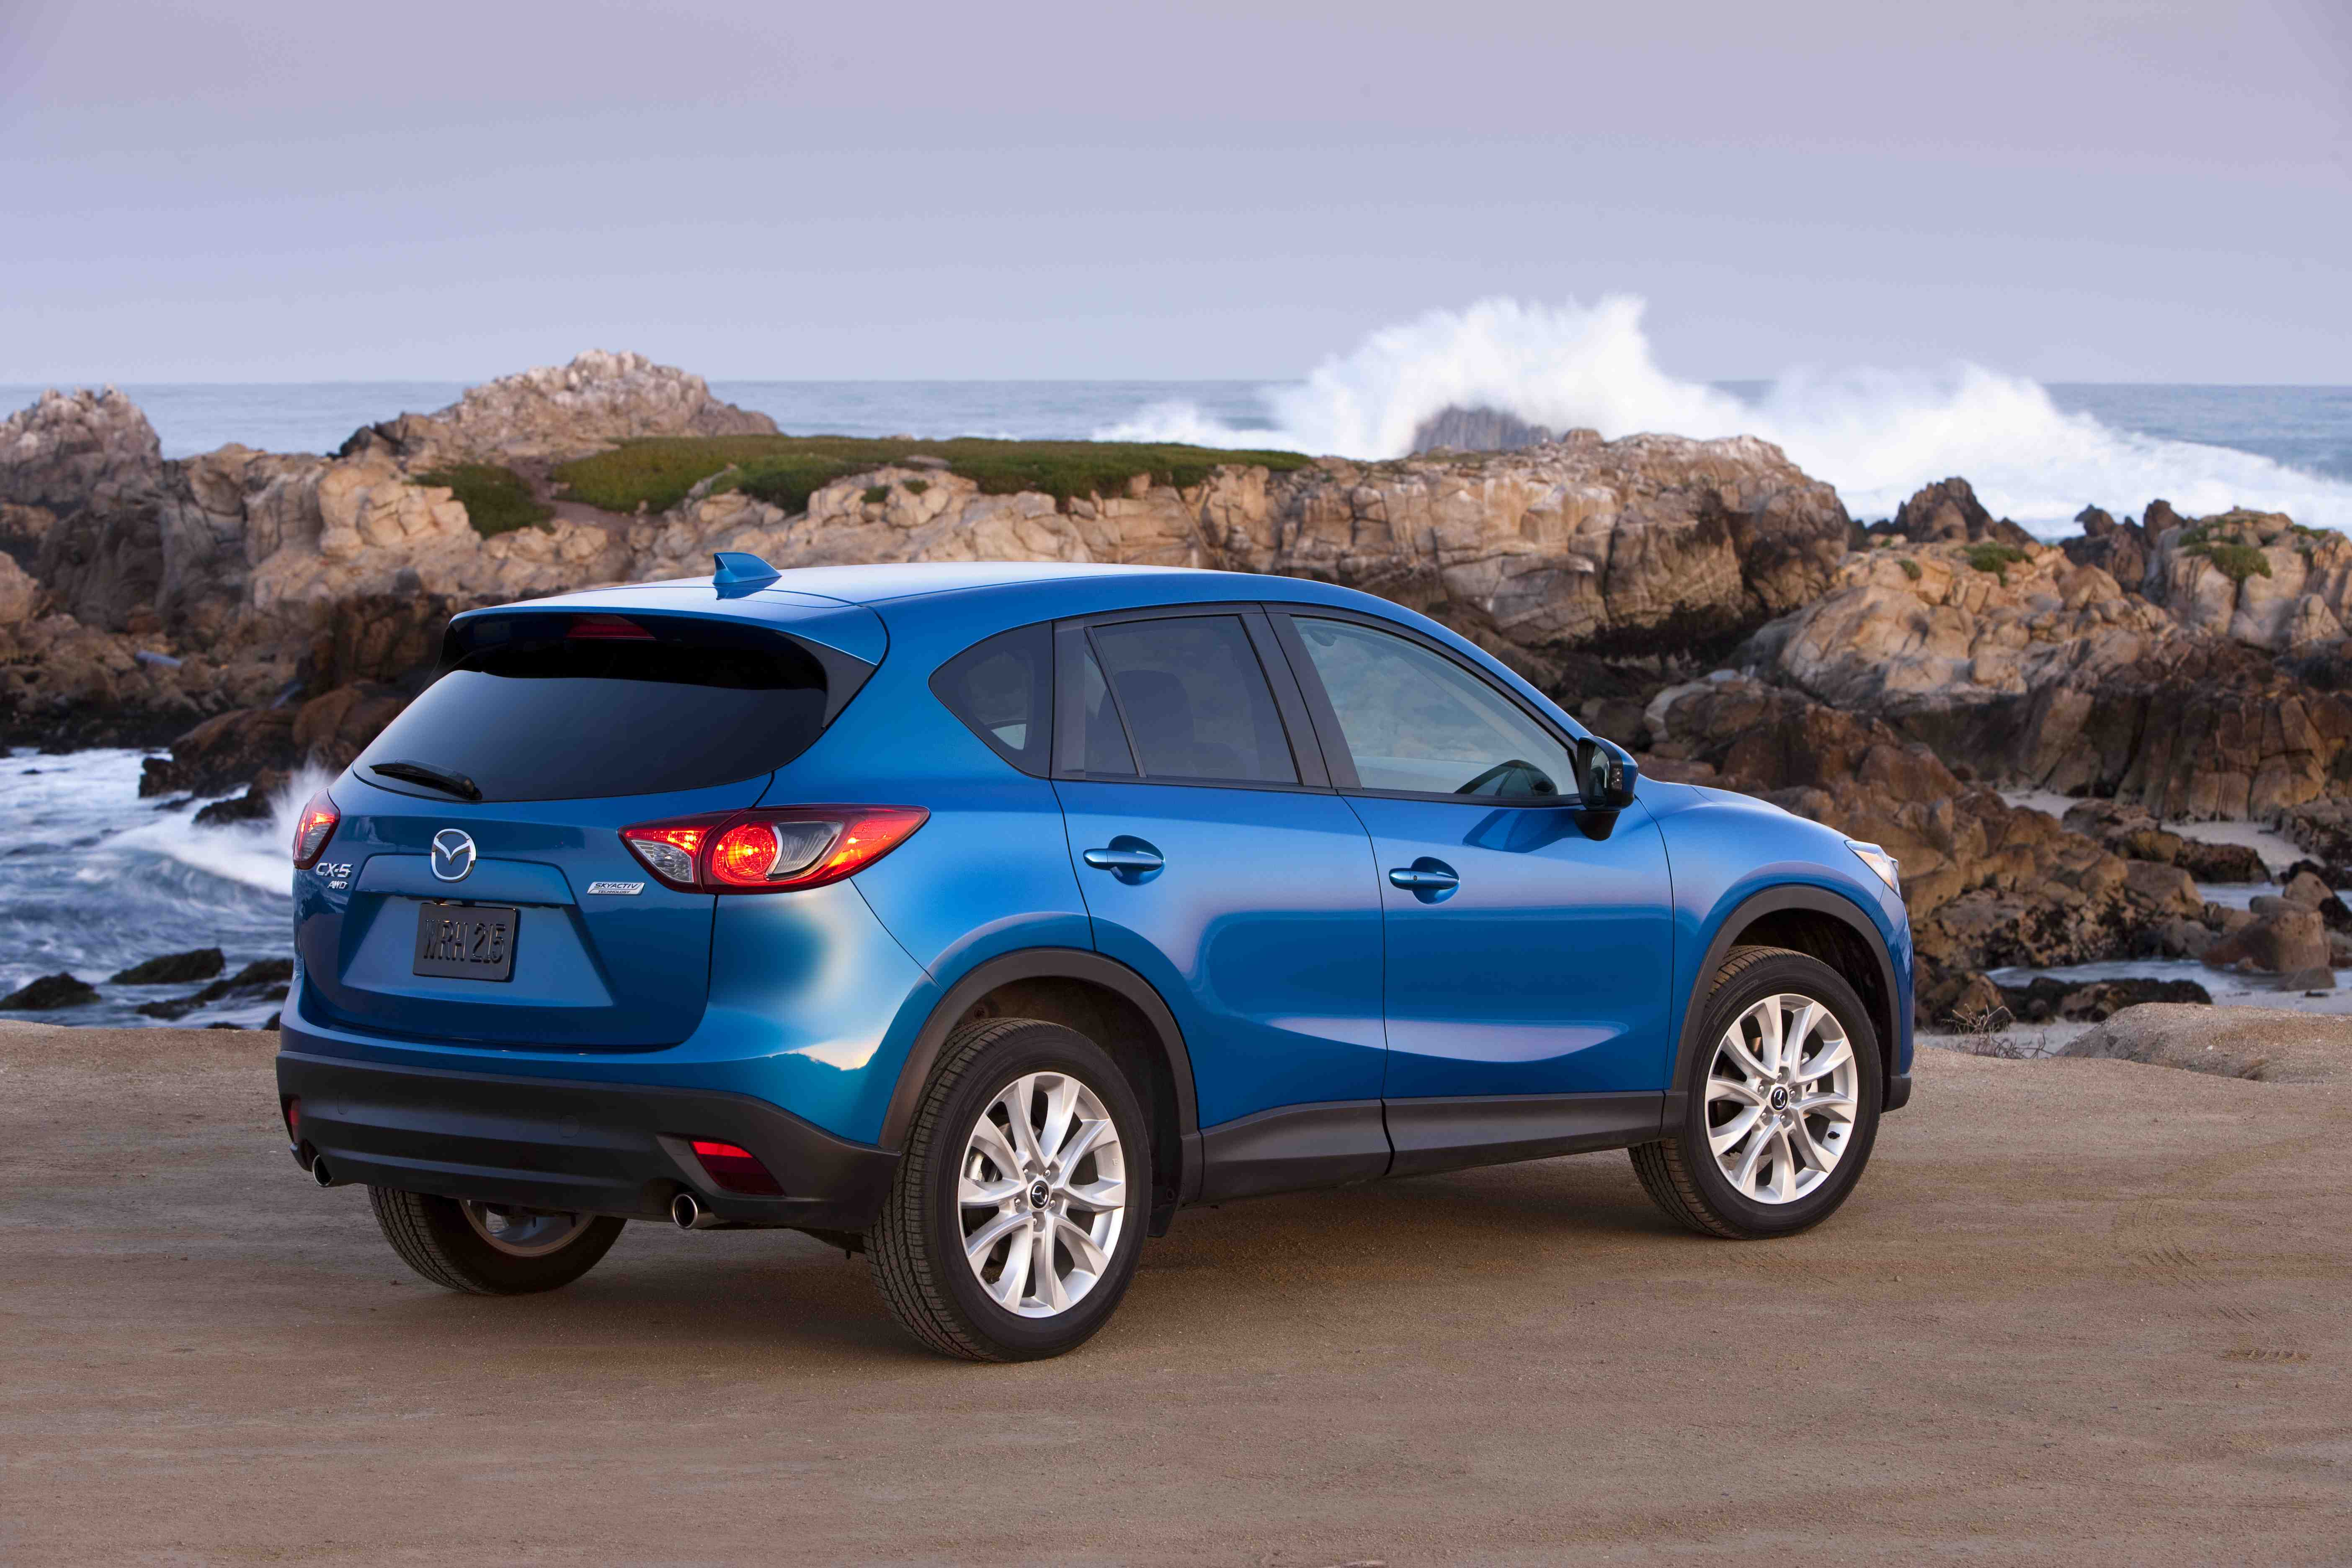 2013 mazda cx 5 photos informations articles. Black Bedroom Furniture Sets. Home Design Ideas